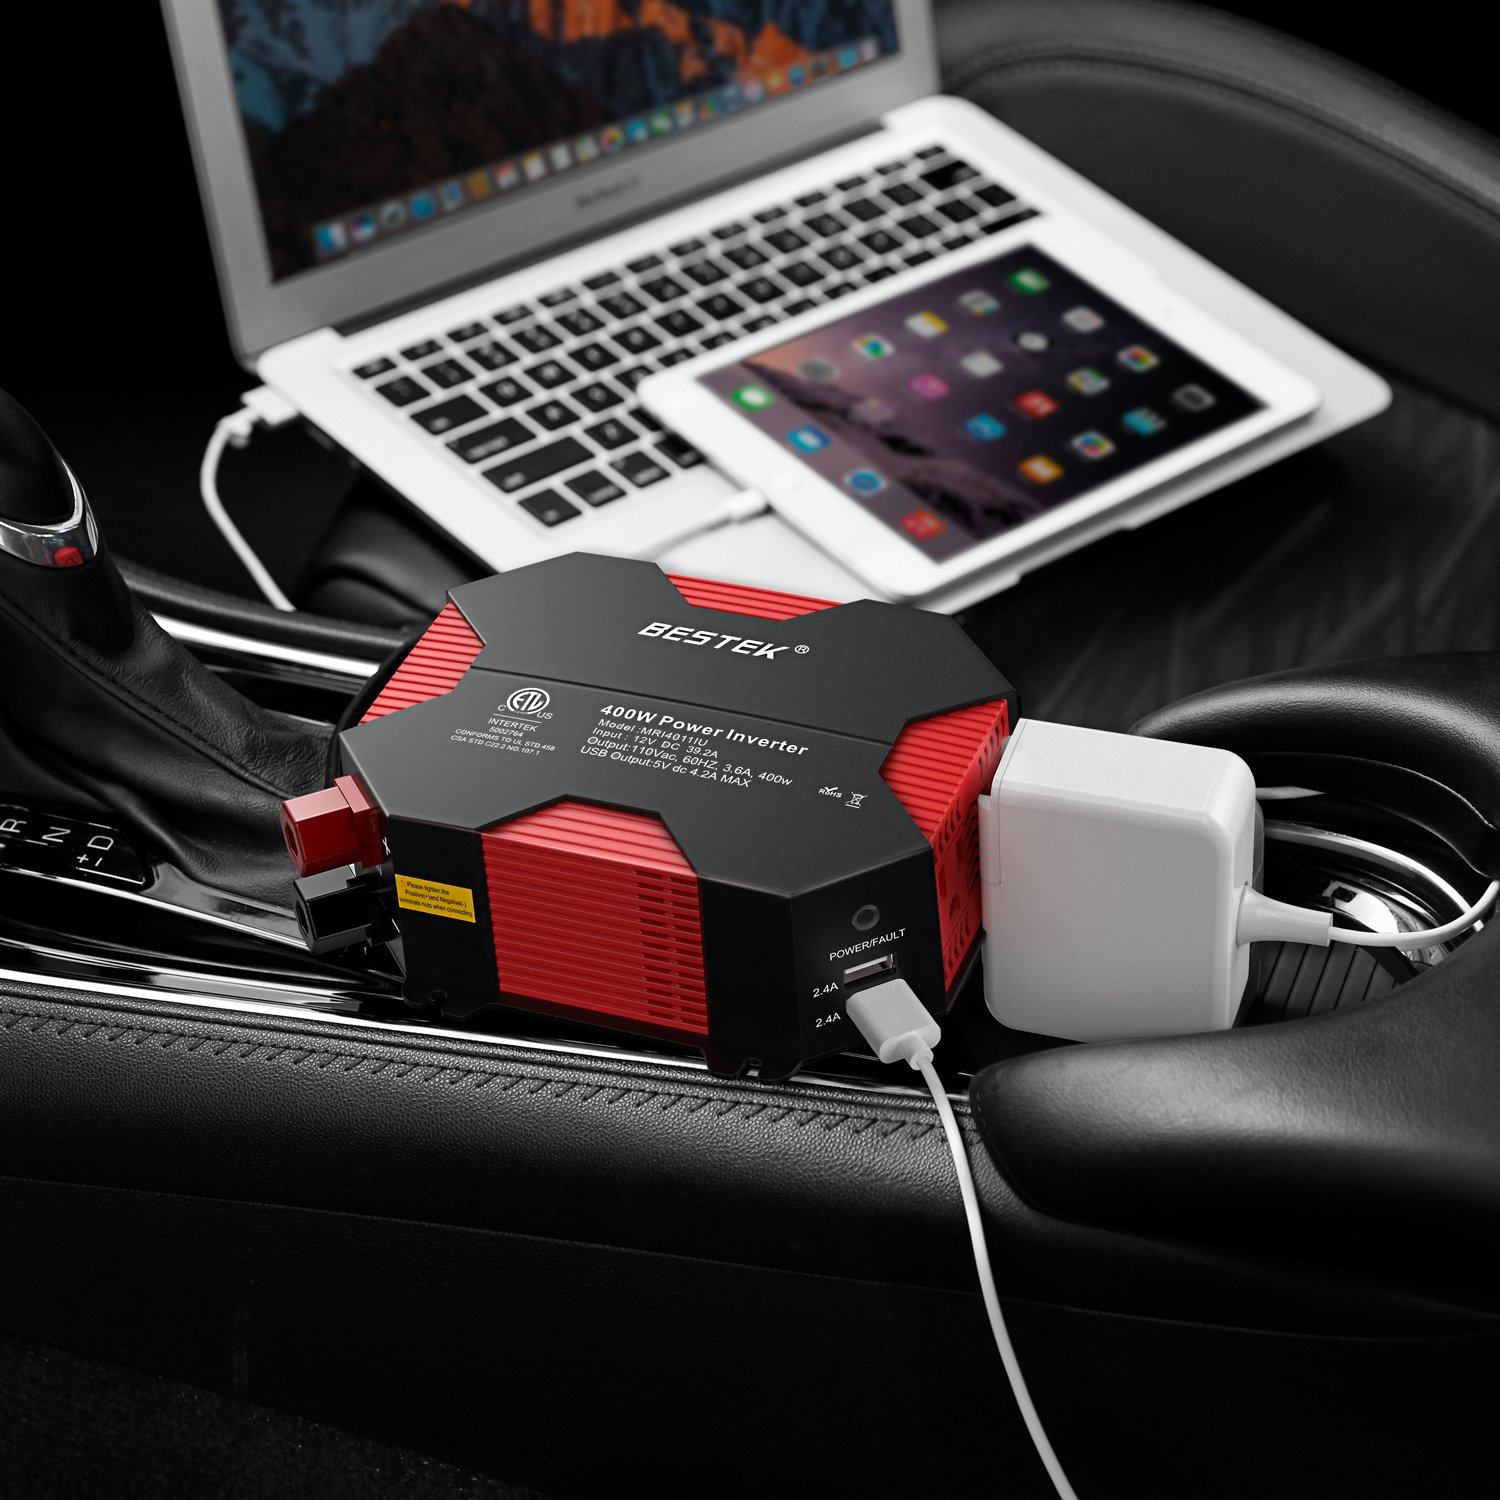 Car Power Inverter by BESTEK 400W Modified Sine Wave Inverter 4 USB Charging Ports DC 12V to AC 110V, MRI4011IU - image 3 of 8